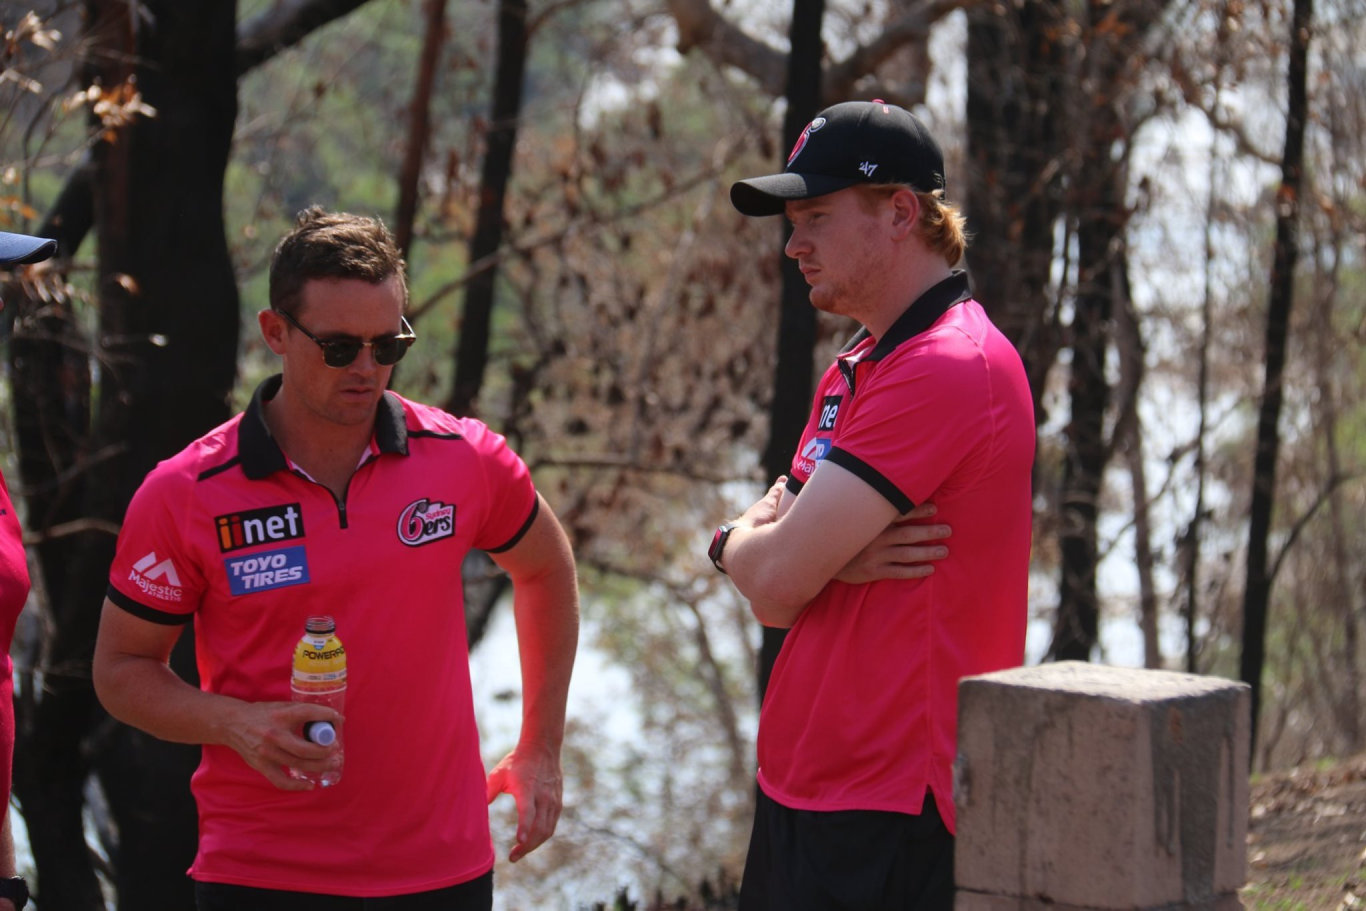 Sydney Sixers players Daniel Hughes and Lloyd Pope reflect on the tragic situation at fire ravaged Nymboida during a team visit ahead of their BBL09 fixture with Adelaide Strikers at C.Ex International Stadium in Coffs Harbour on Sunday, 5th January, 2019.